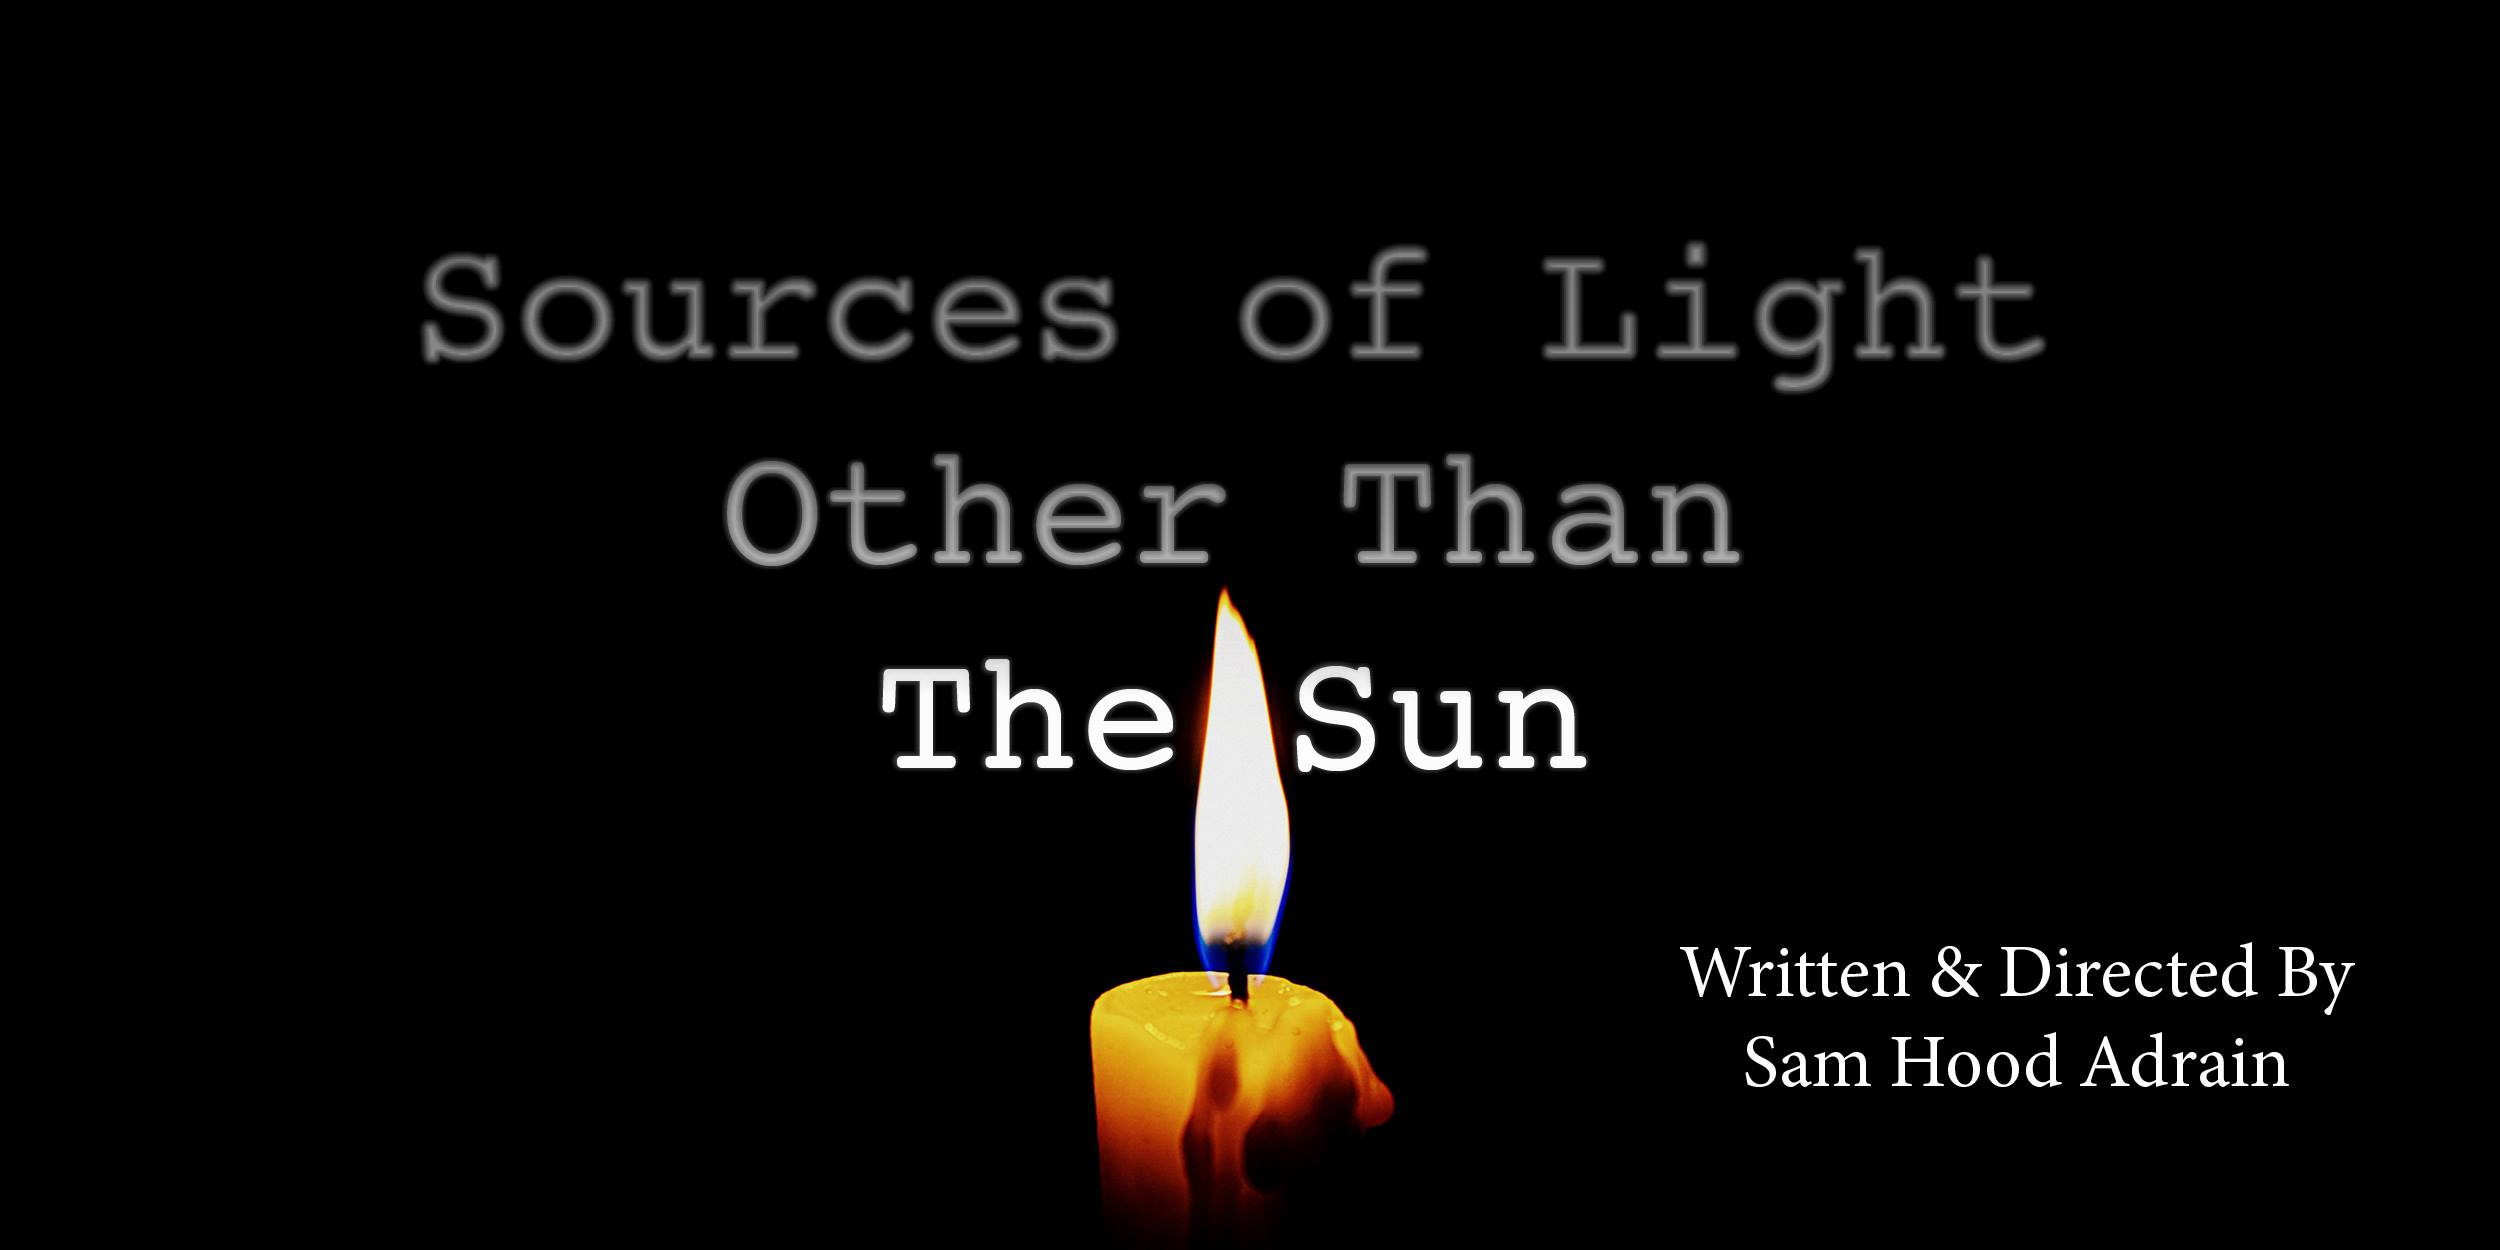 """""""Sources Of Light Other Than The Sun"""" is a new play by  Sam Hood Adrain that is being presented as part of the 2016 Thespis Festival in New York City.  It is an unnerving and unrelenting examination of five weeks in the trenches on The Western Front of WWI. The story concentrates on the lives of four young soldiers enduring all the horrors of modern warfare; a generation trying to make sense of the new and chaotic world that is forming around them. Examining the physical and emotional traumas experienced during the Great War, """"Sources Of Light… """" attempts to capture a snapshot of what life was for these men. Taking place in near-total darkness, the vita of its characters is brought to light."""